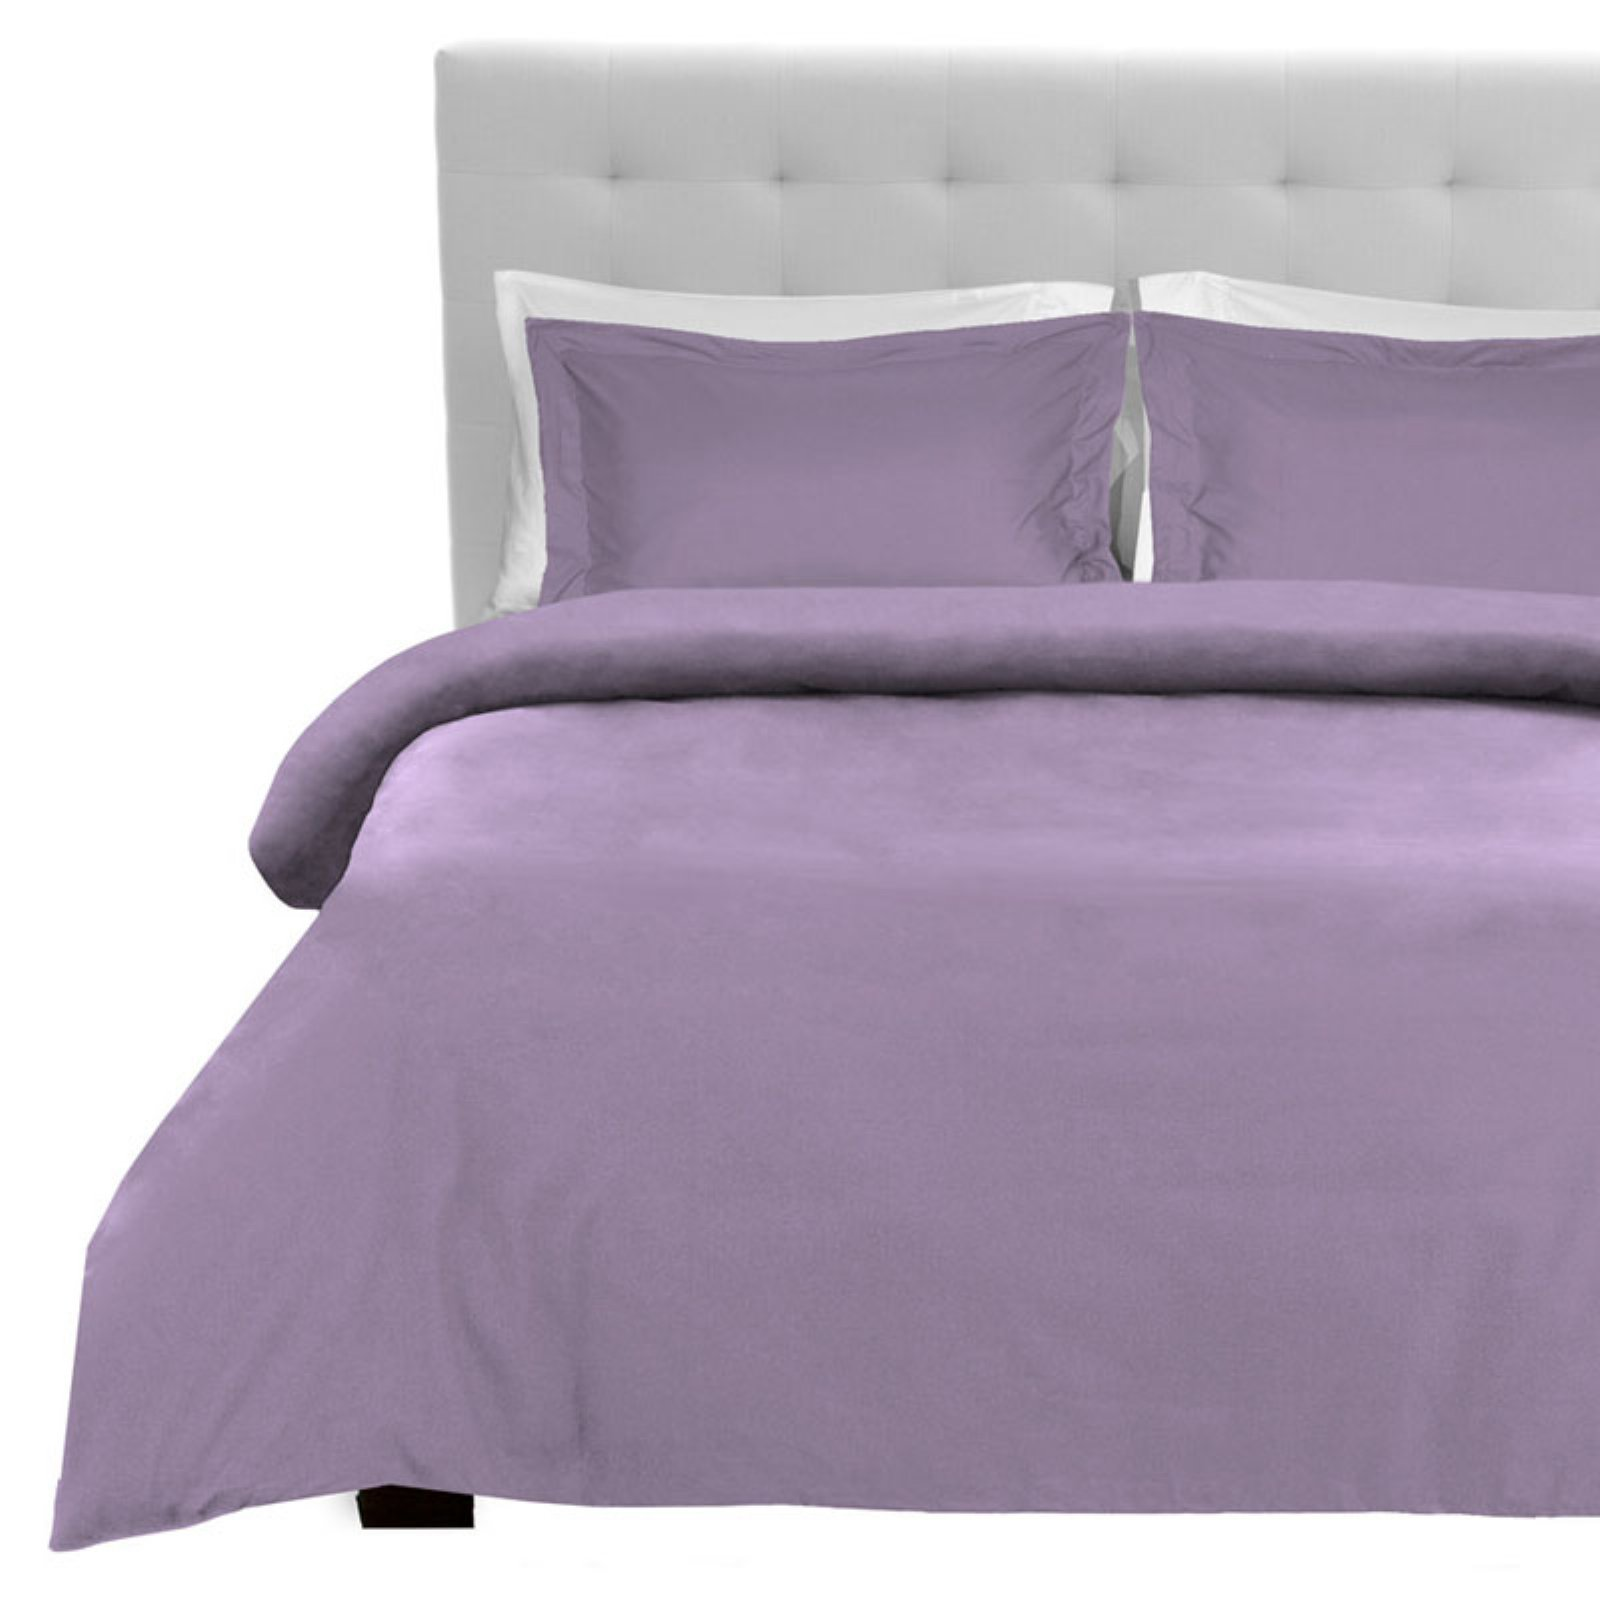 Luxury Double Brushed Microfiber Duvet Cover Set by Bare Home